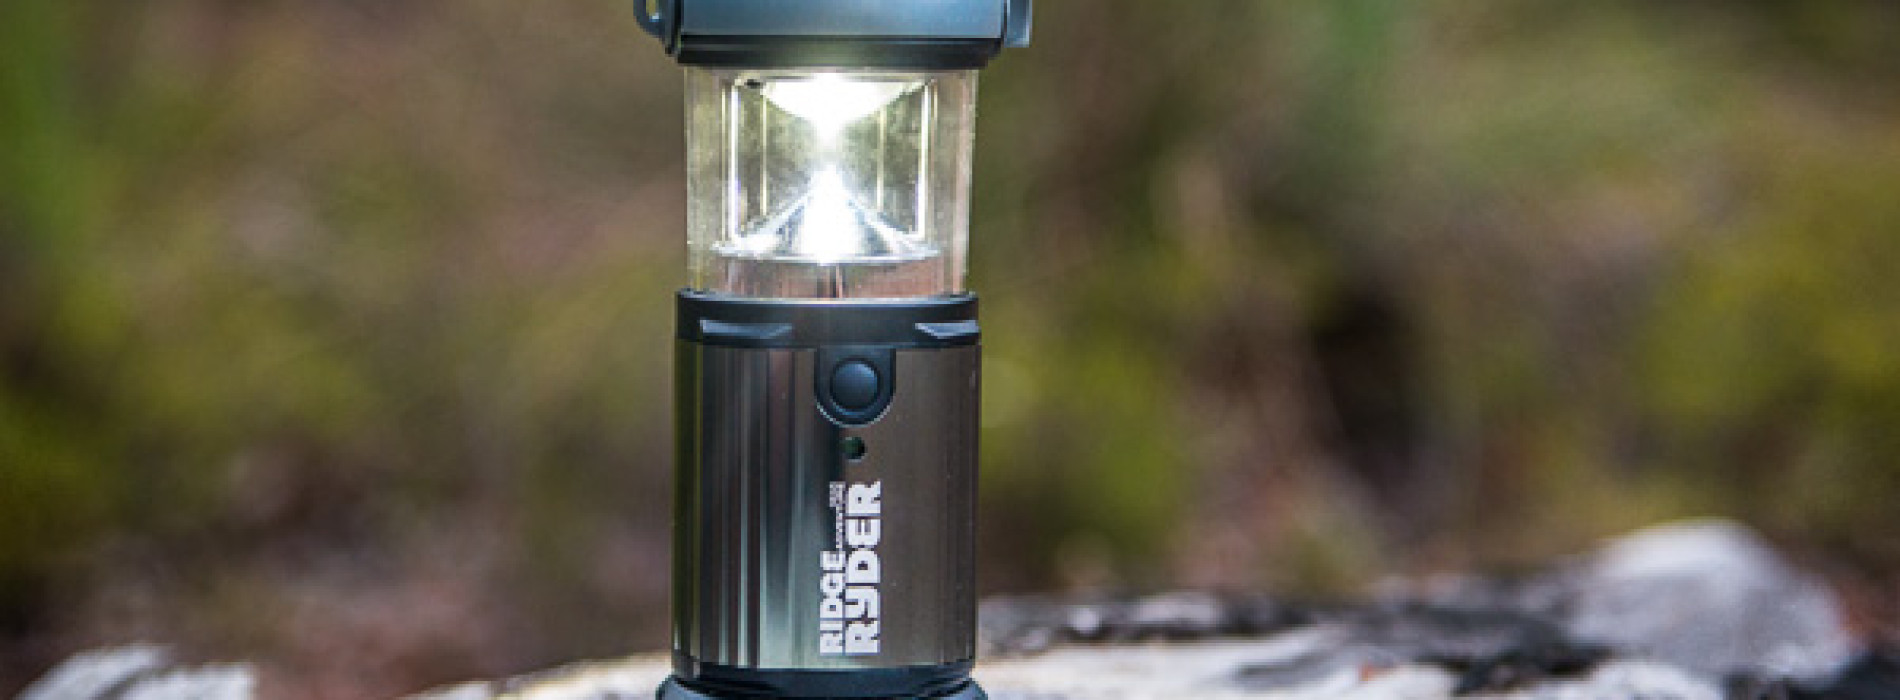 Ridge Ryder LED Lantern Review